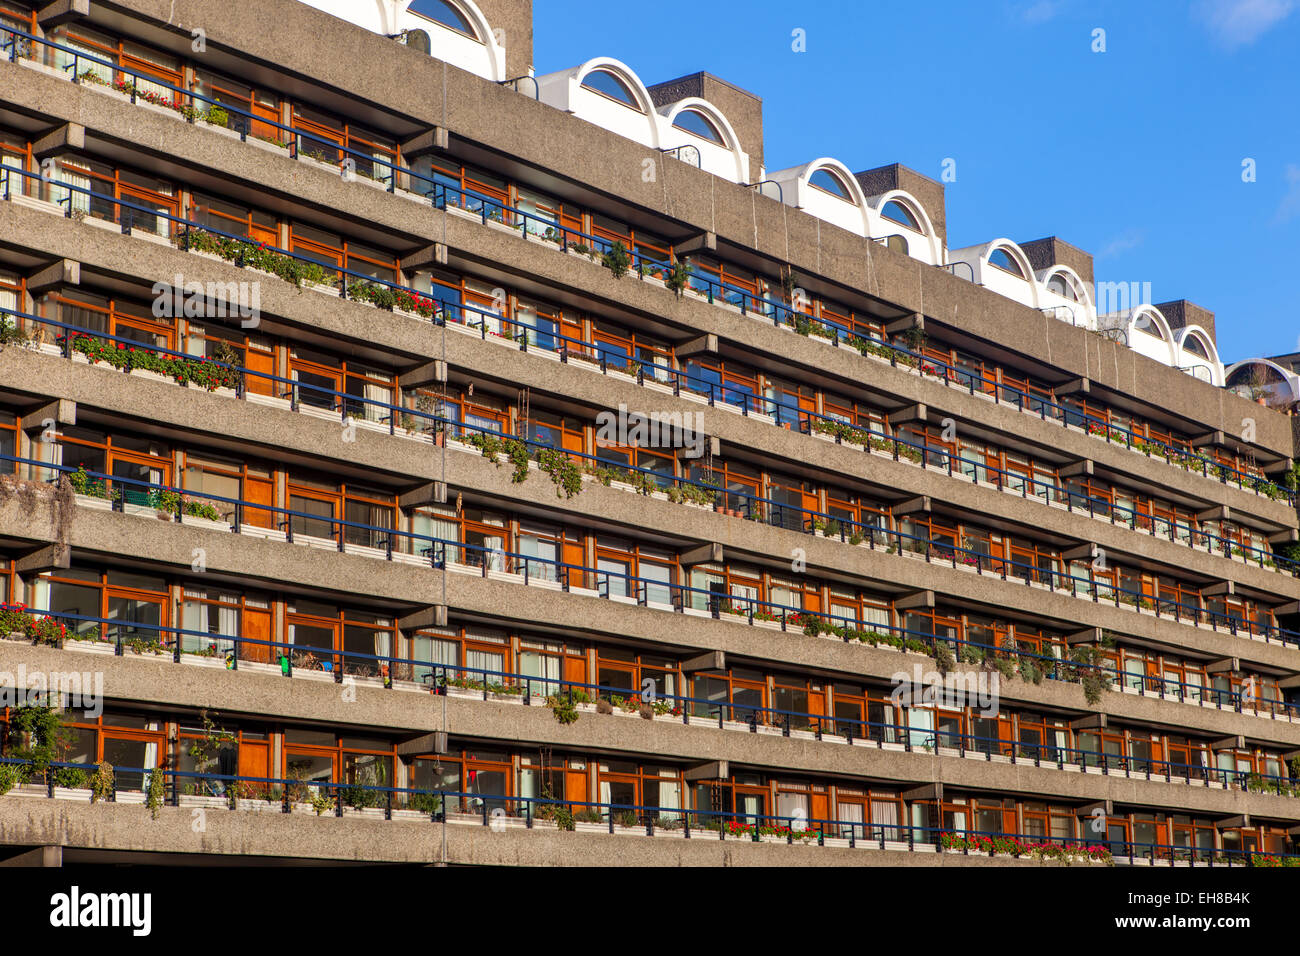 Modern Architecture London England barbican apartments, modernist architecture and high rise